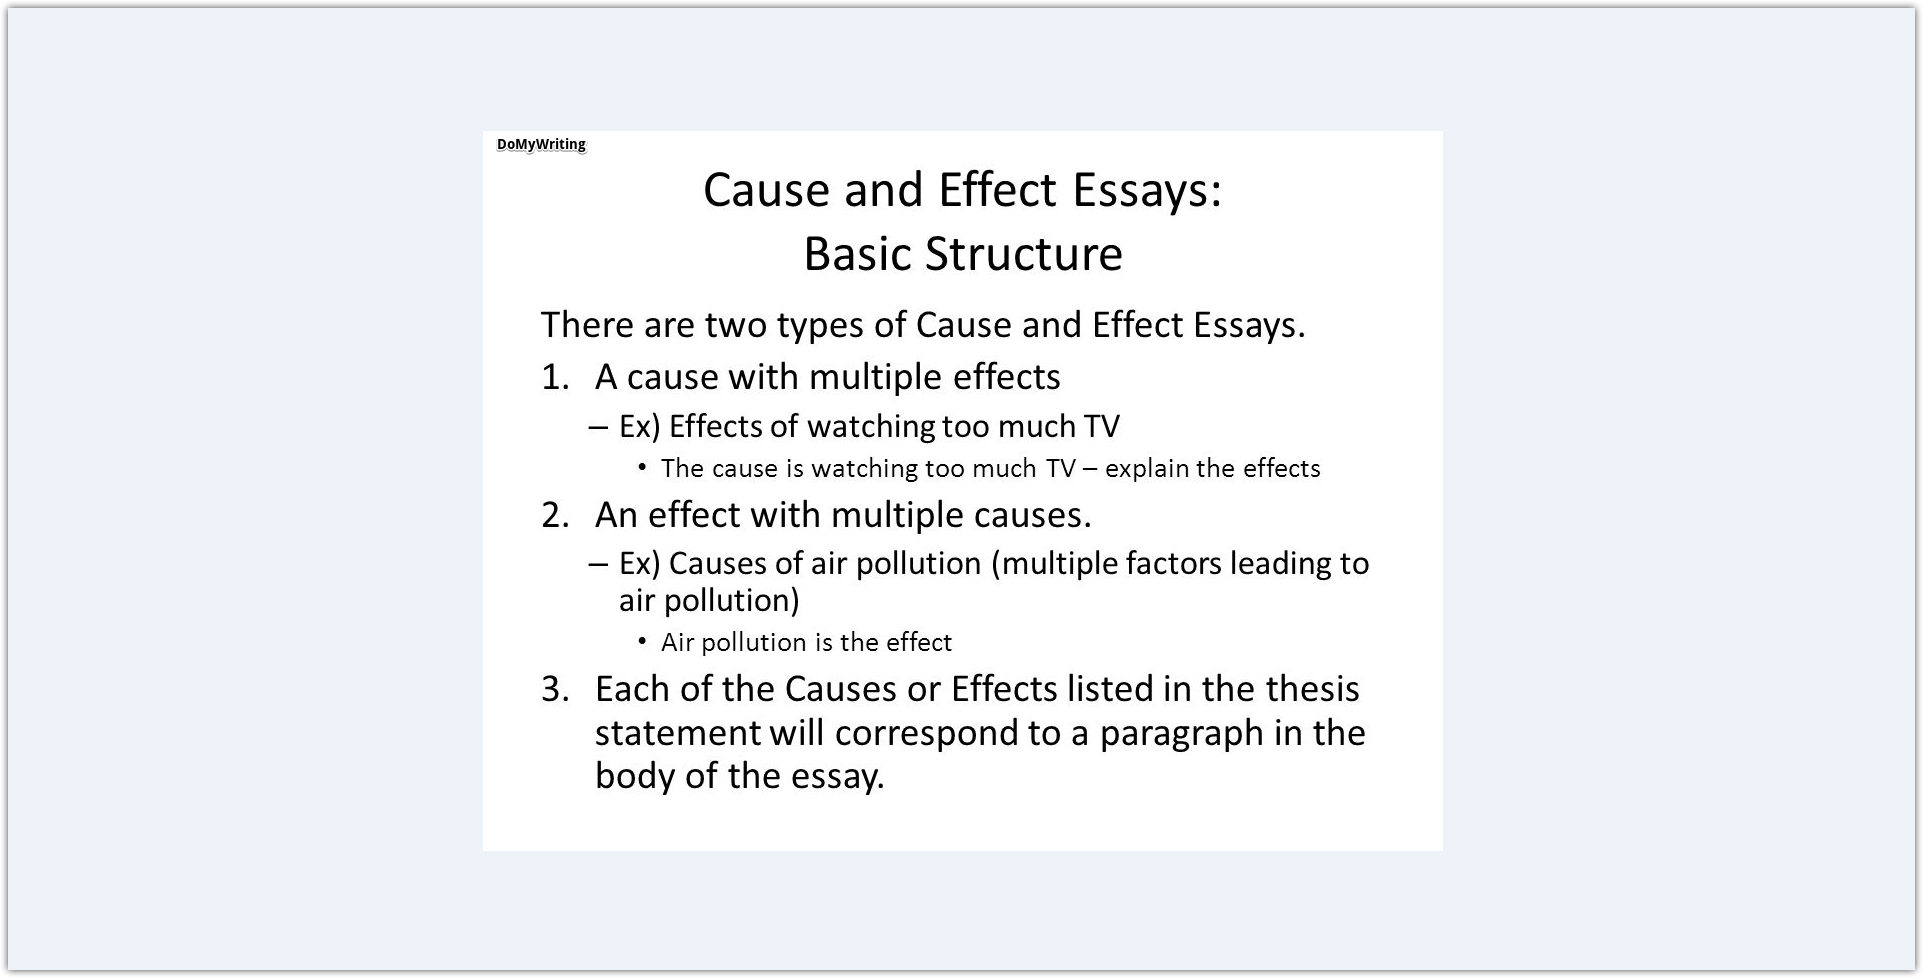 013 Cause And Effect Essay Topics Structure Dreaded Smoking Outline For 6th Graders Format Full